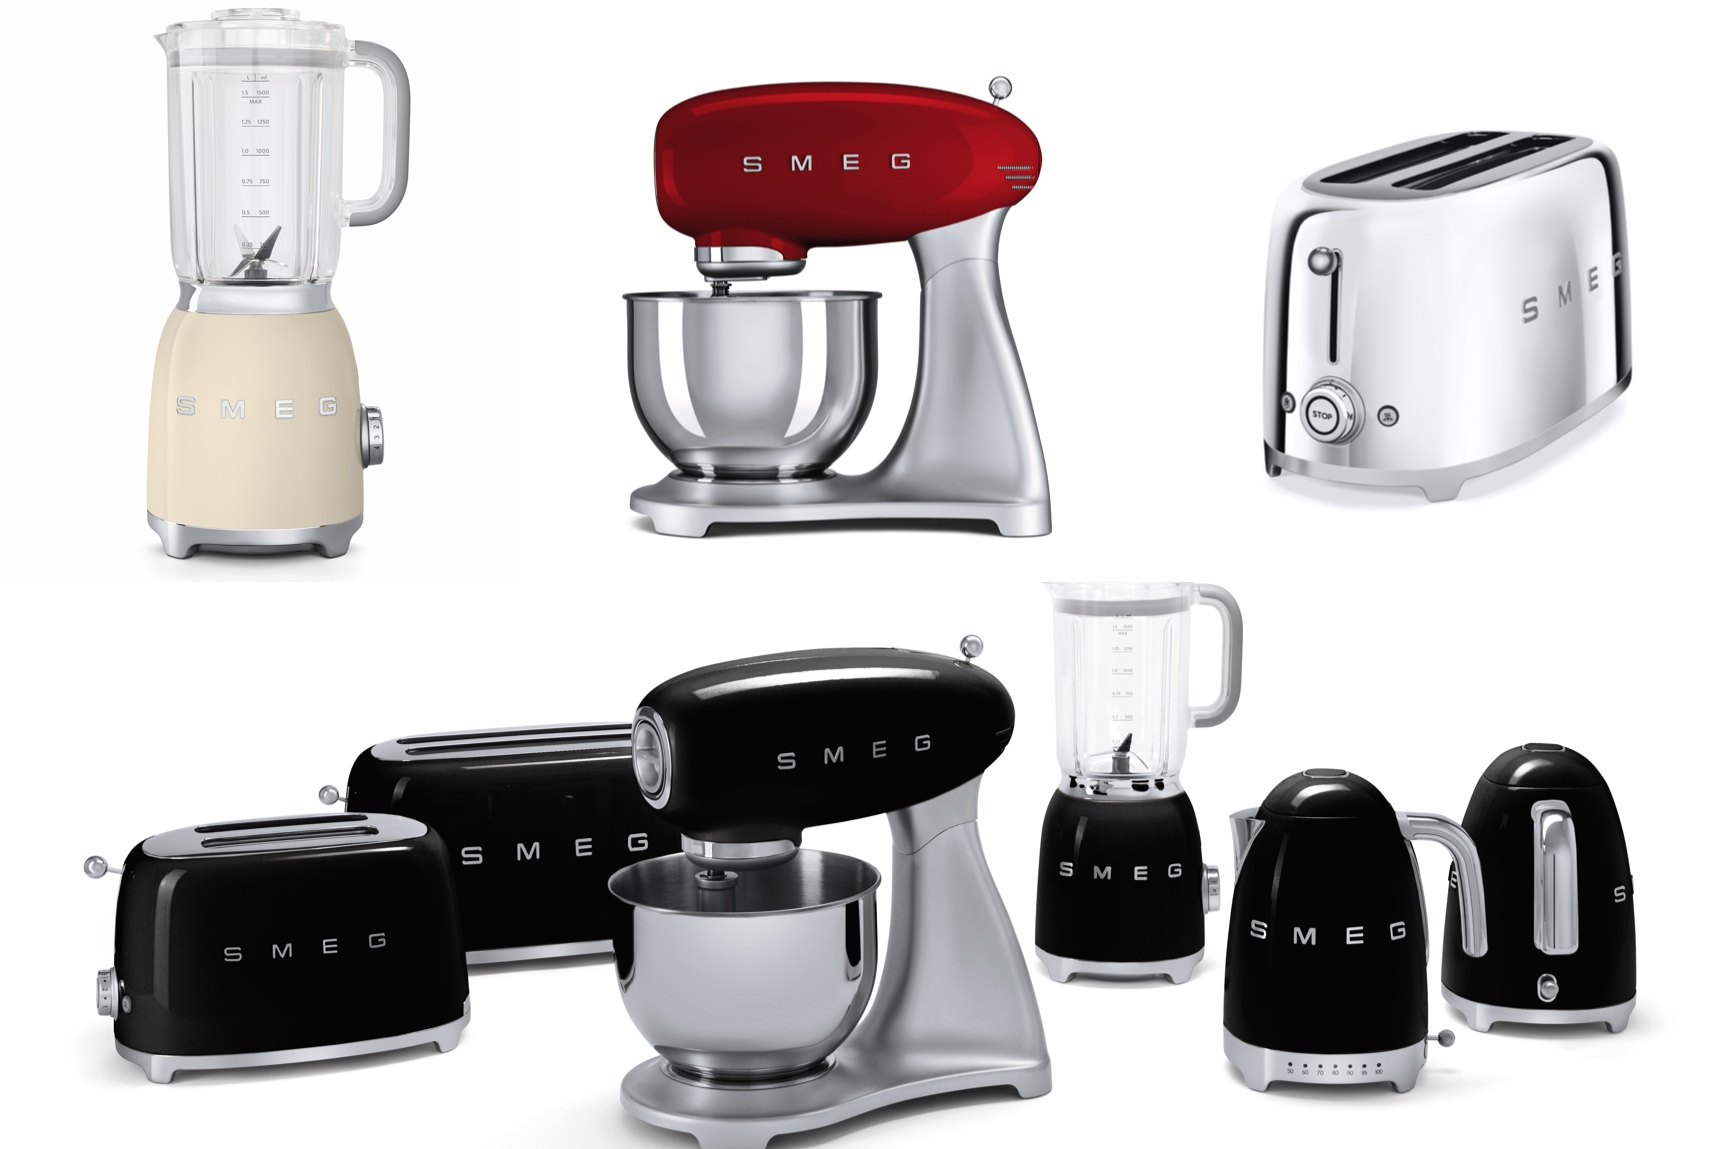 Cooking With Style SMEG Launches A Small Appliance Line Food